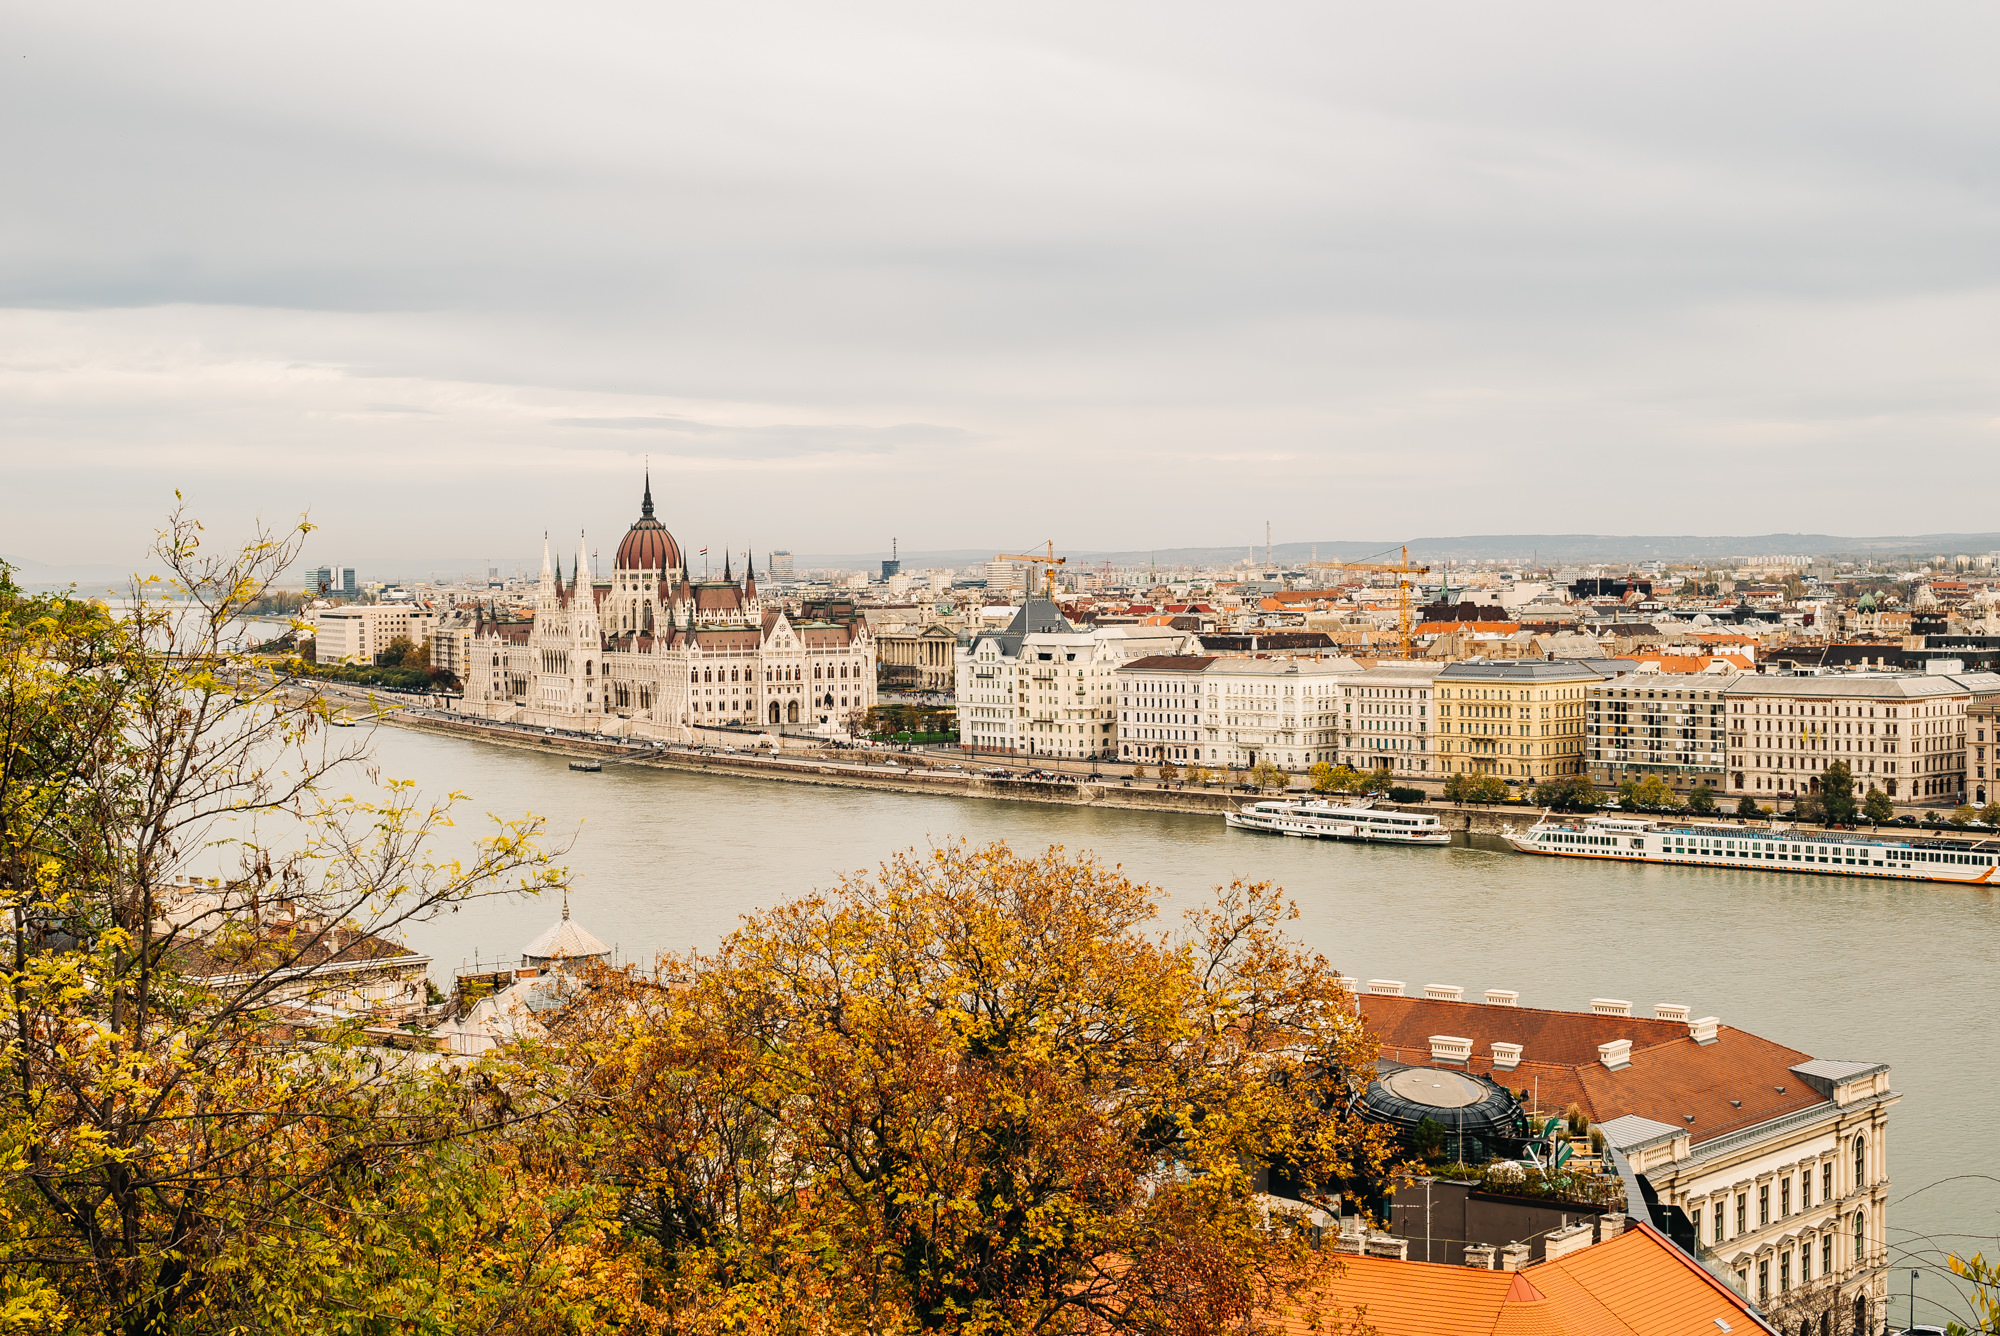 View of Pest from the Buda side